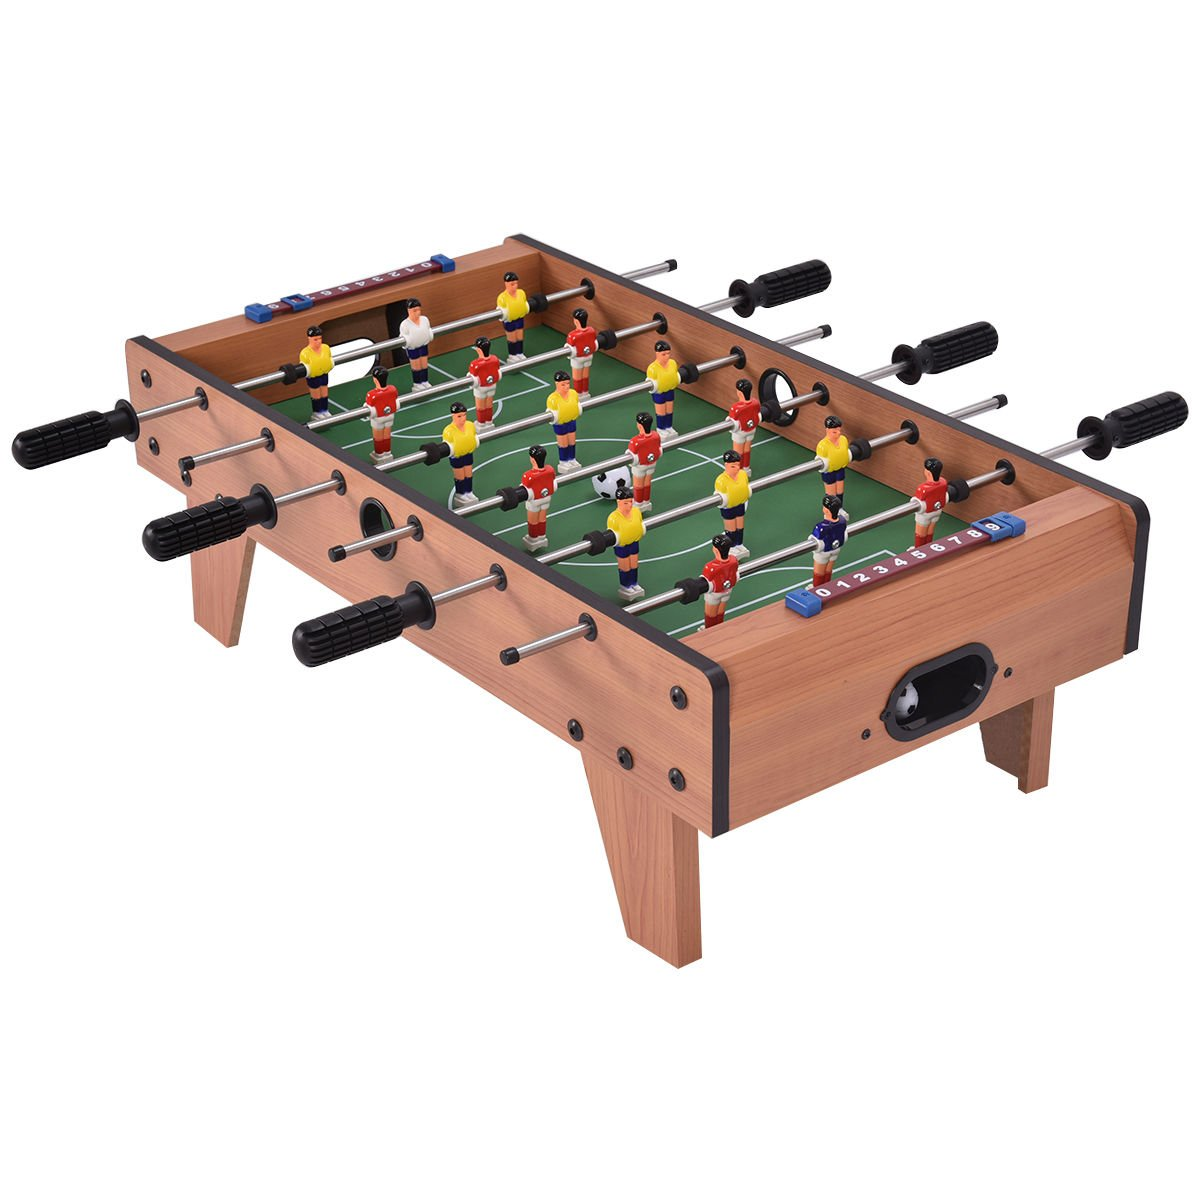 Mini Tabletop Soccer Foosball Table Game w/ Legs | Game Play Players Room Soccer Football Sports Boys Christmas Gift